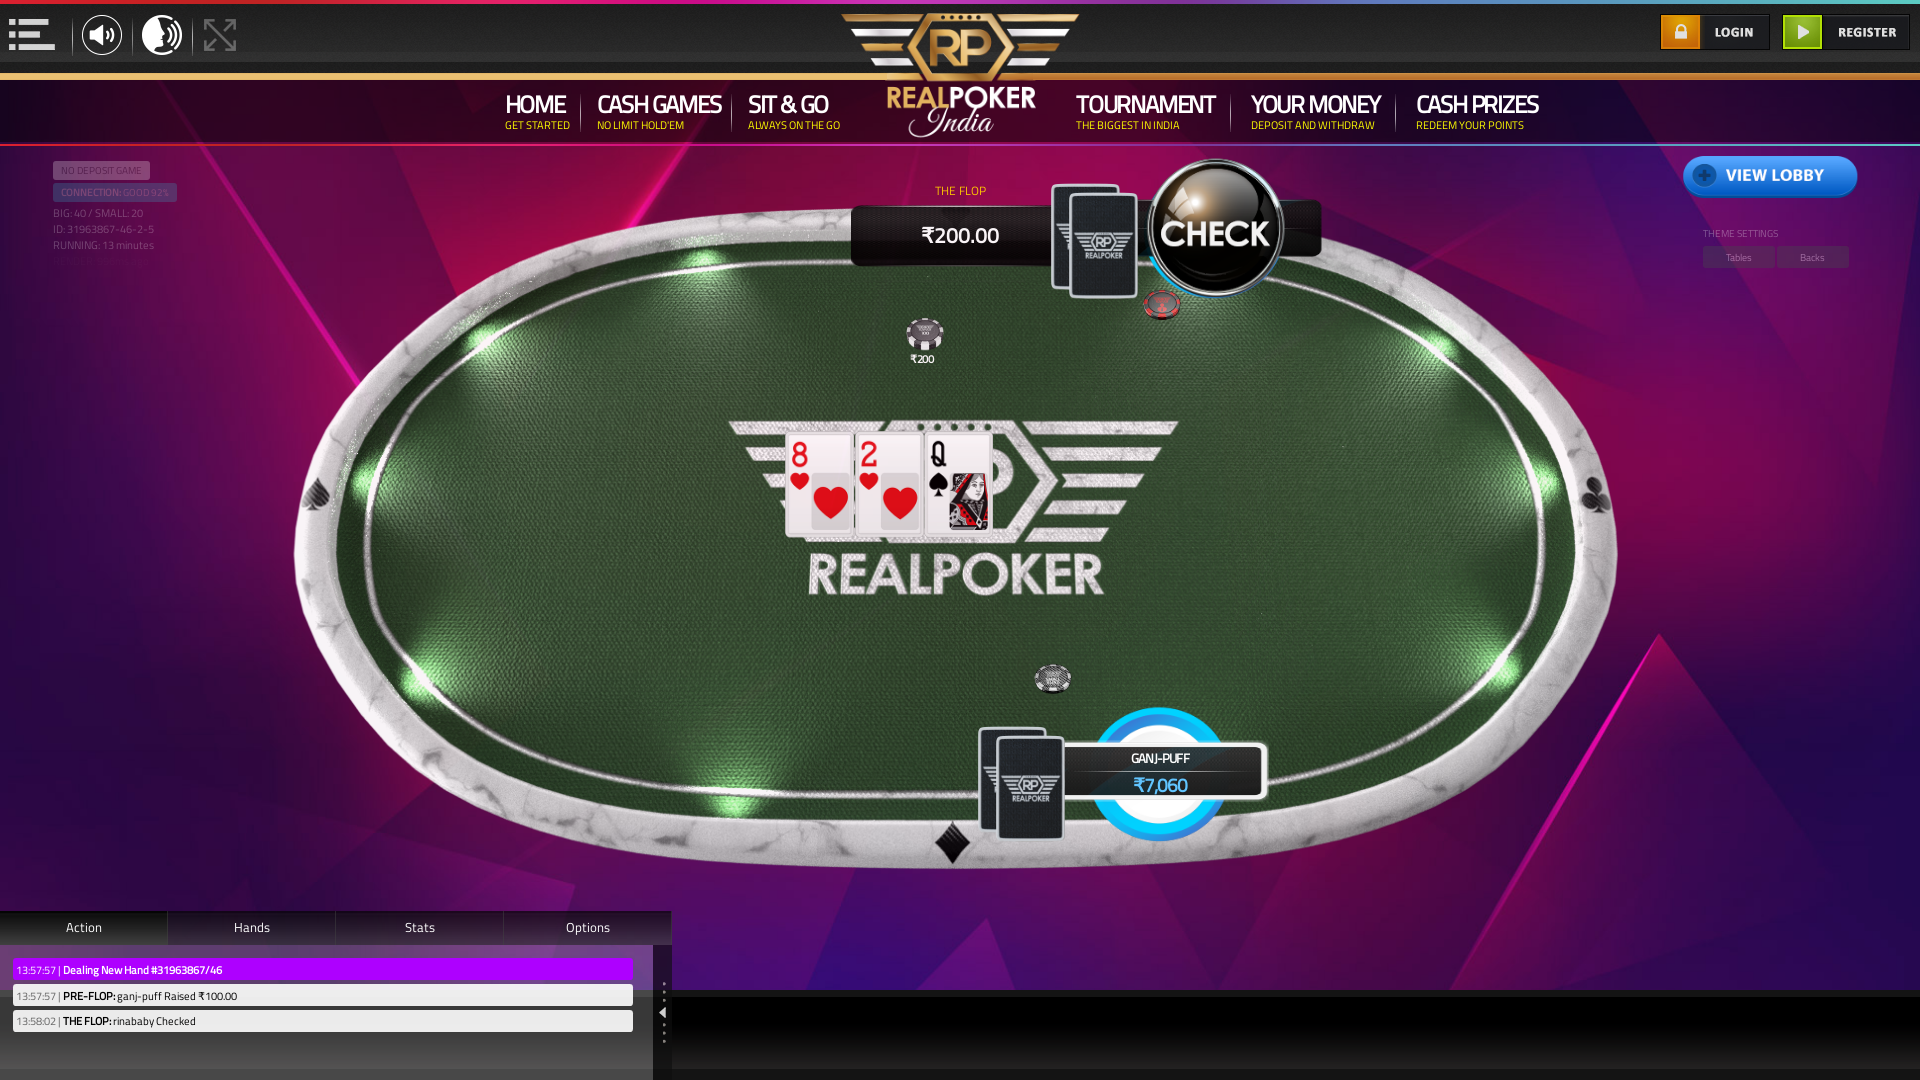 Real poker 10 player table in the 13th minute of the match